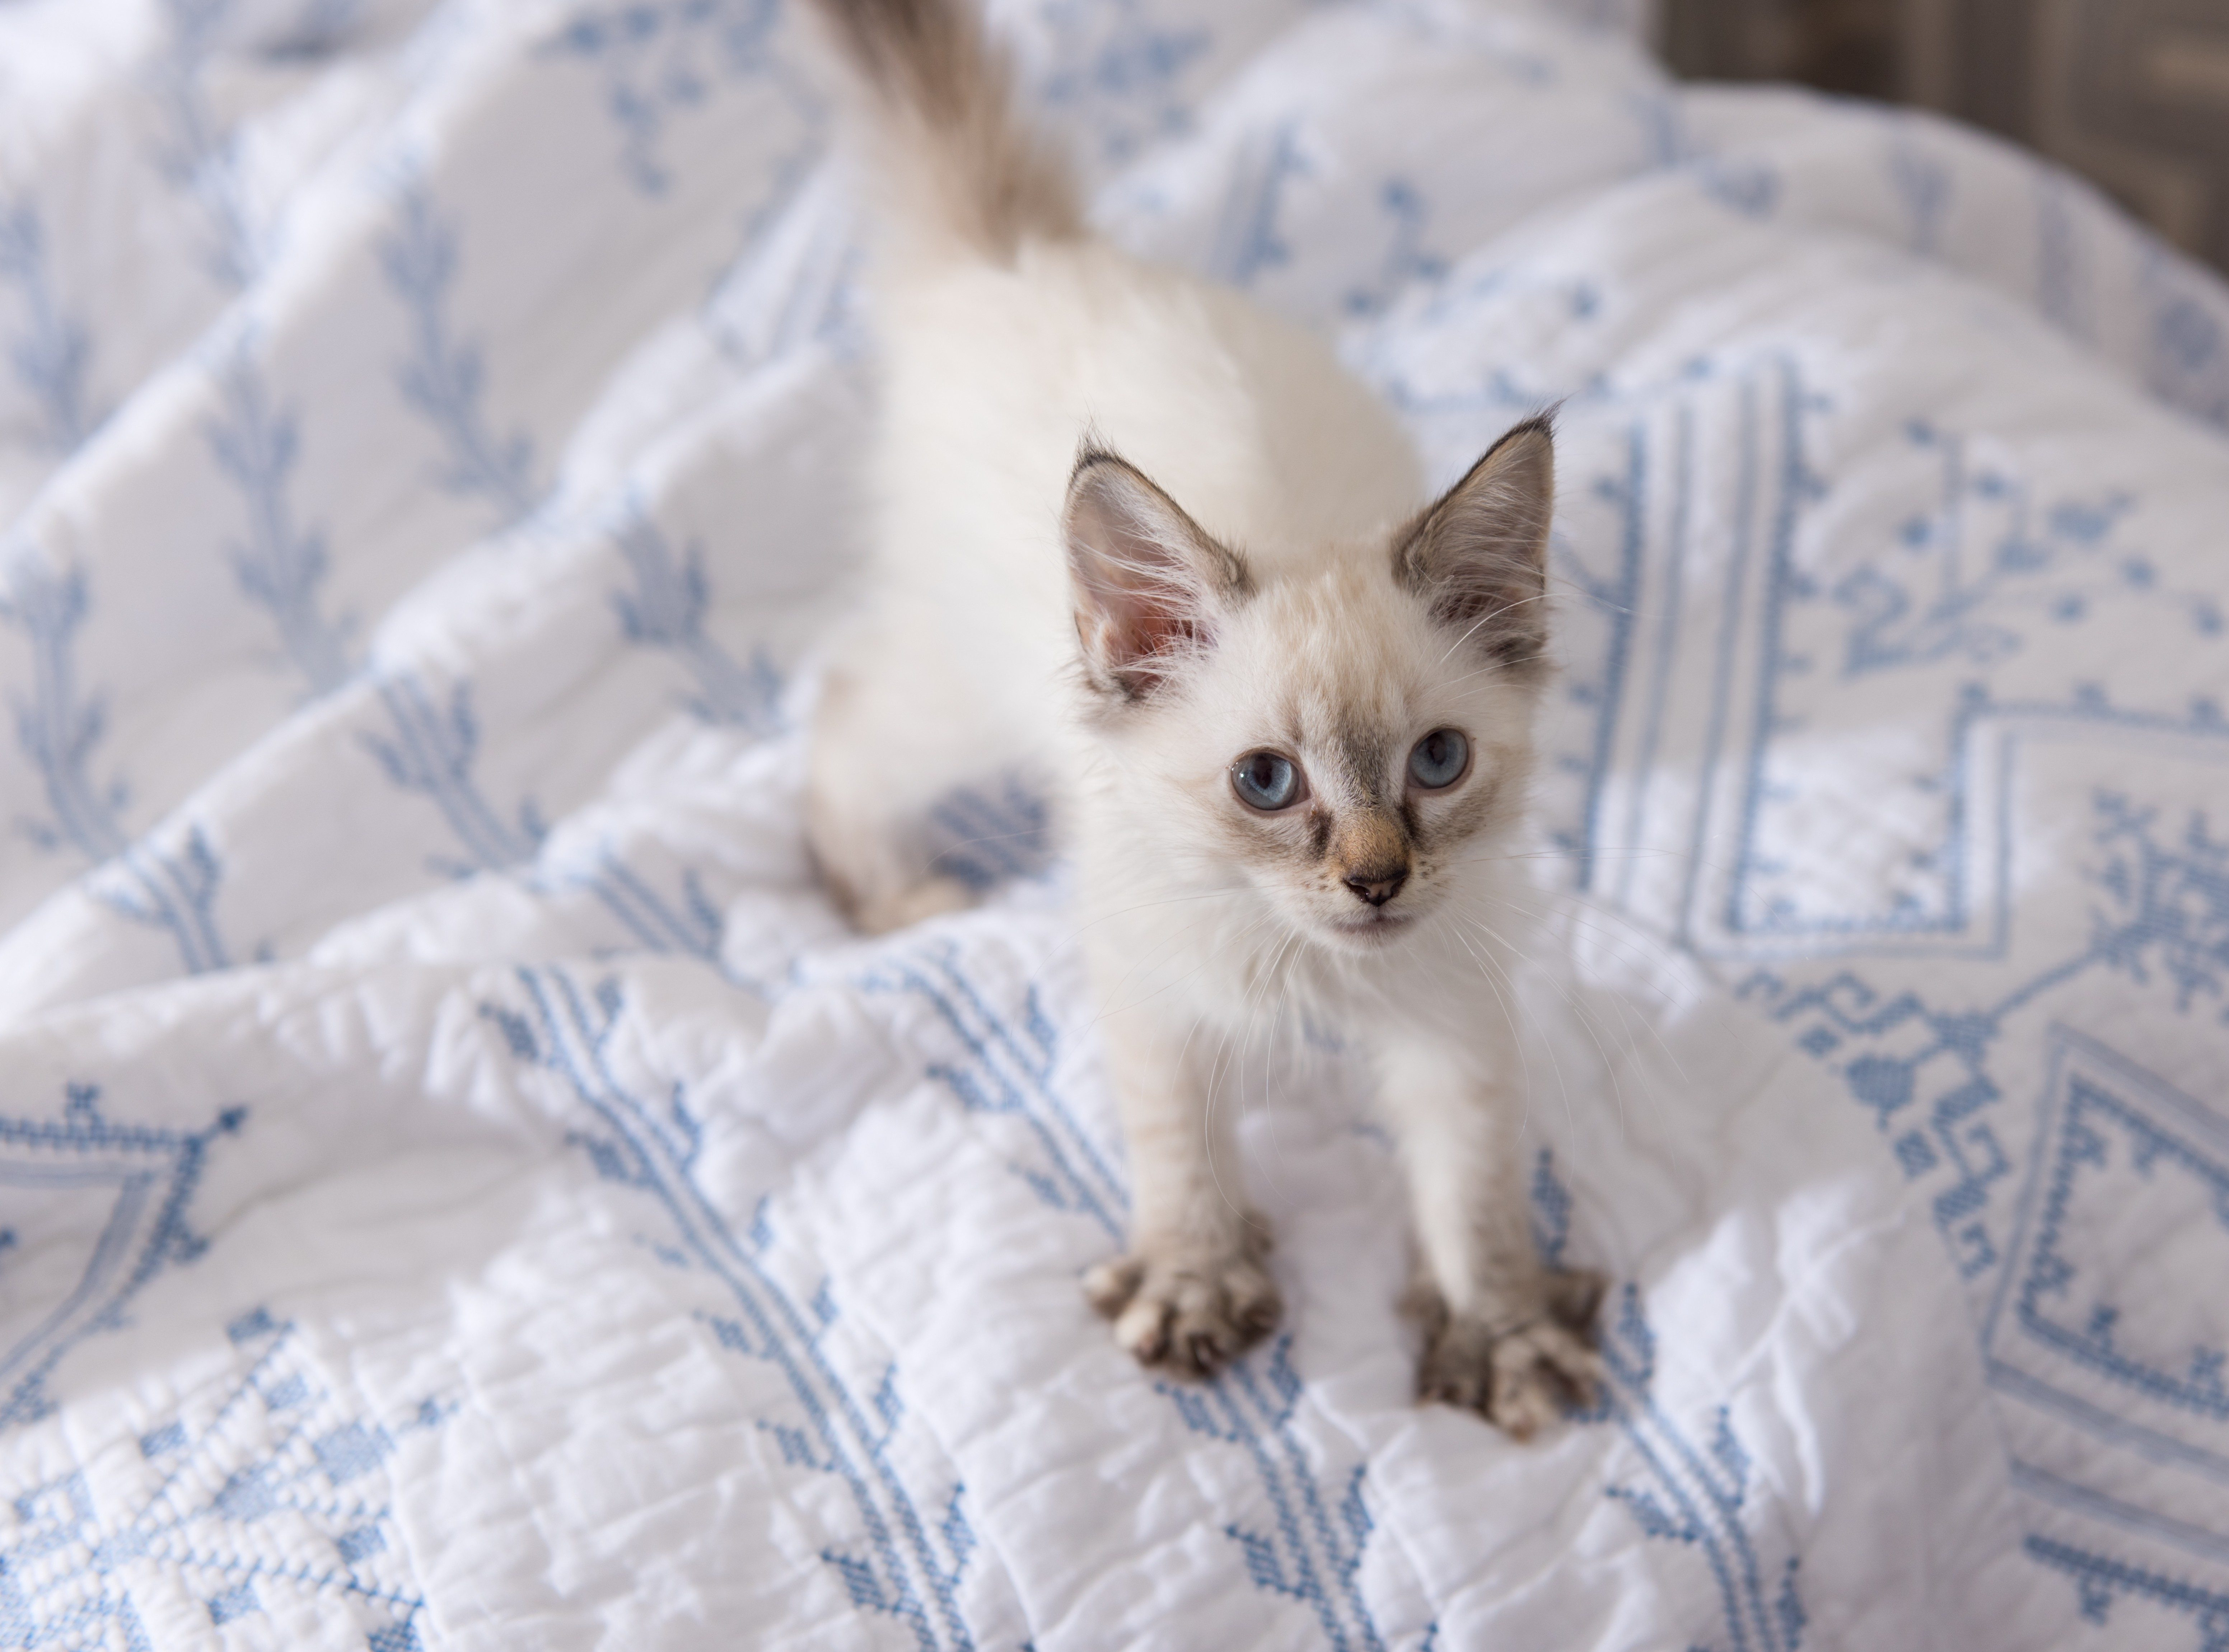 Adorable White and Tan Kitten Playing on Soft Bed